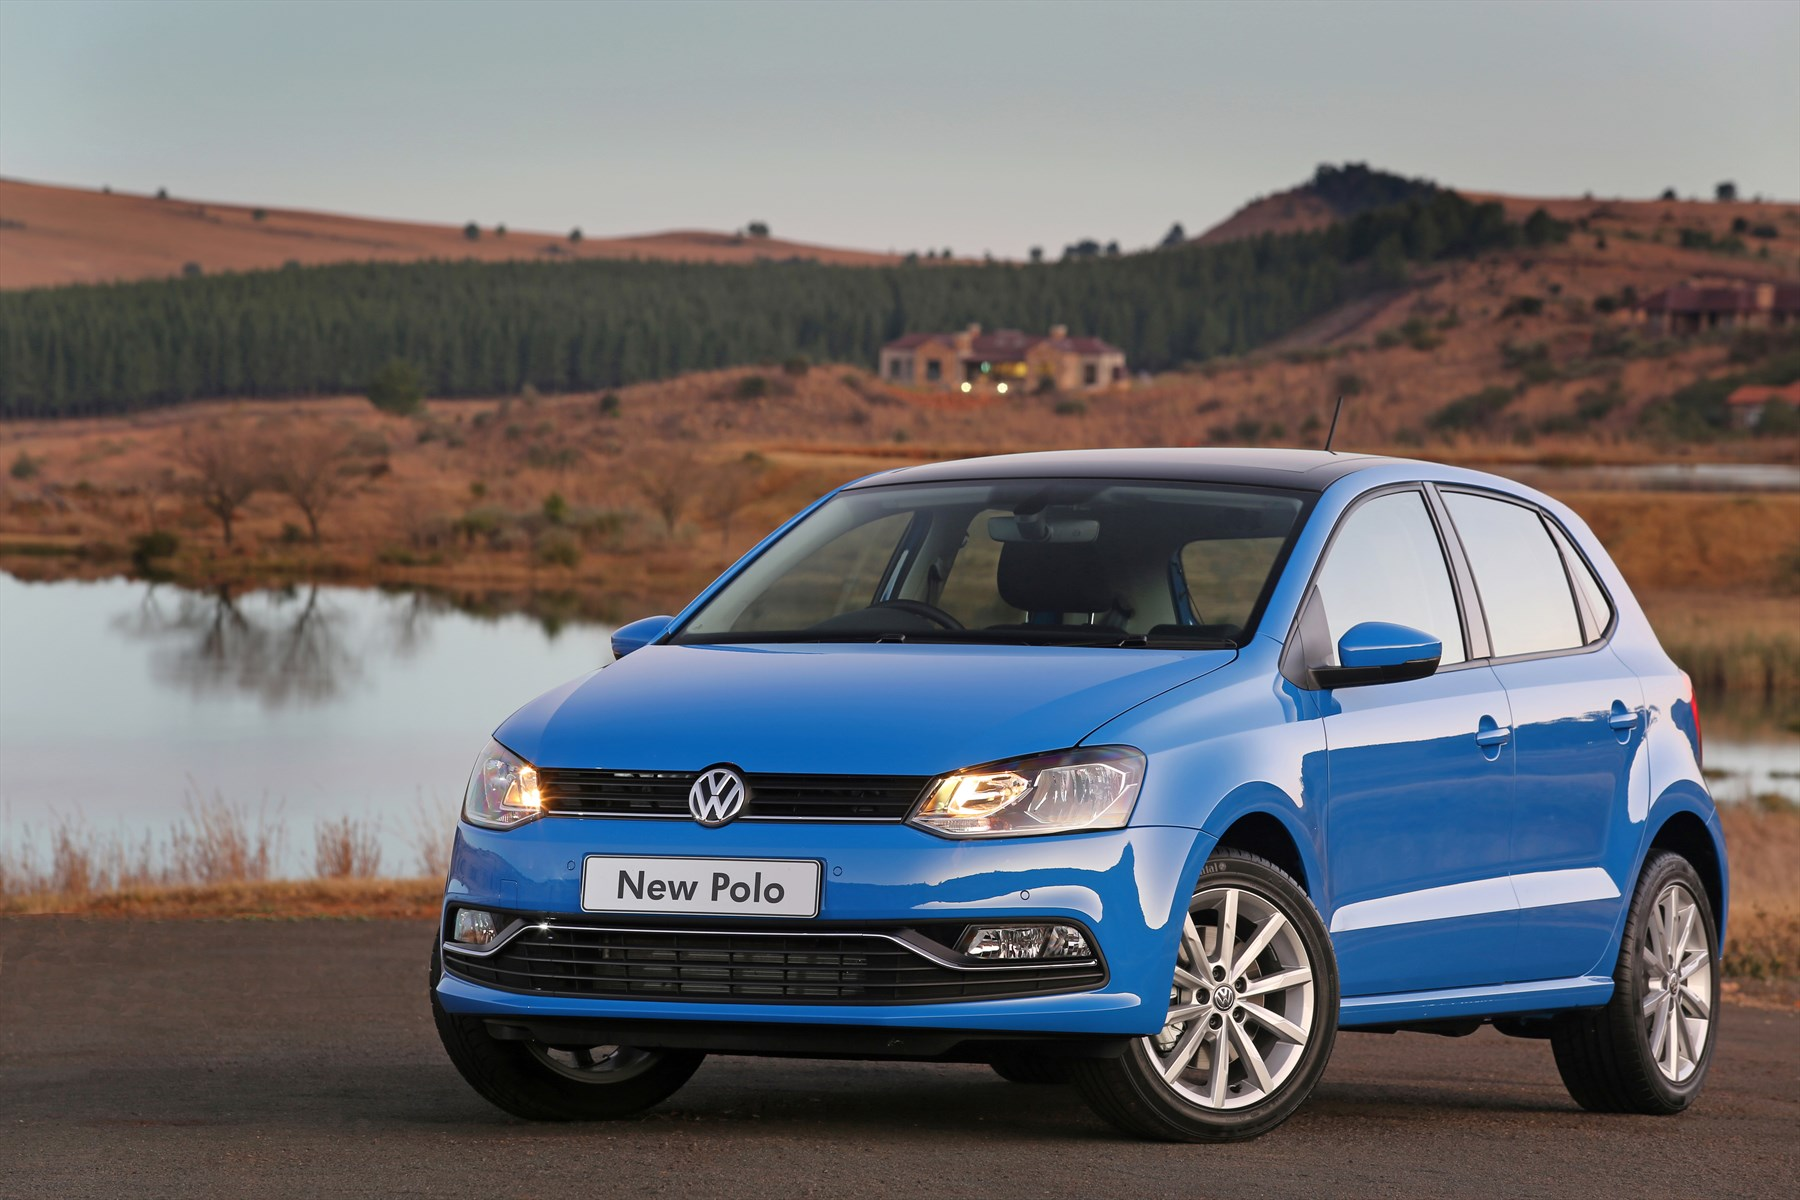 Volkswagen Popular Polo Gets Upgraded: Latest News